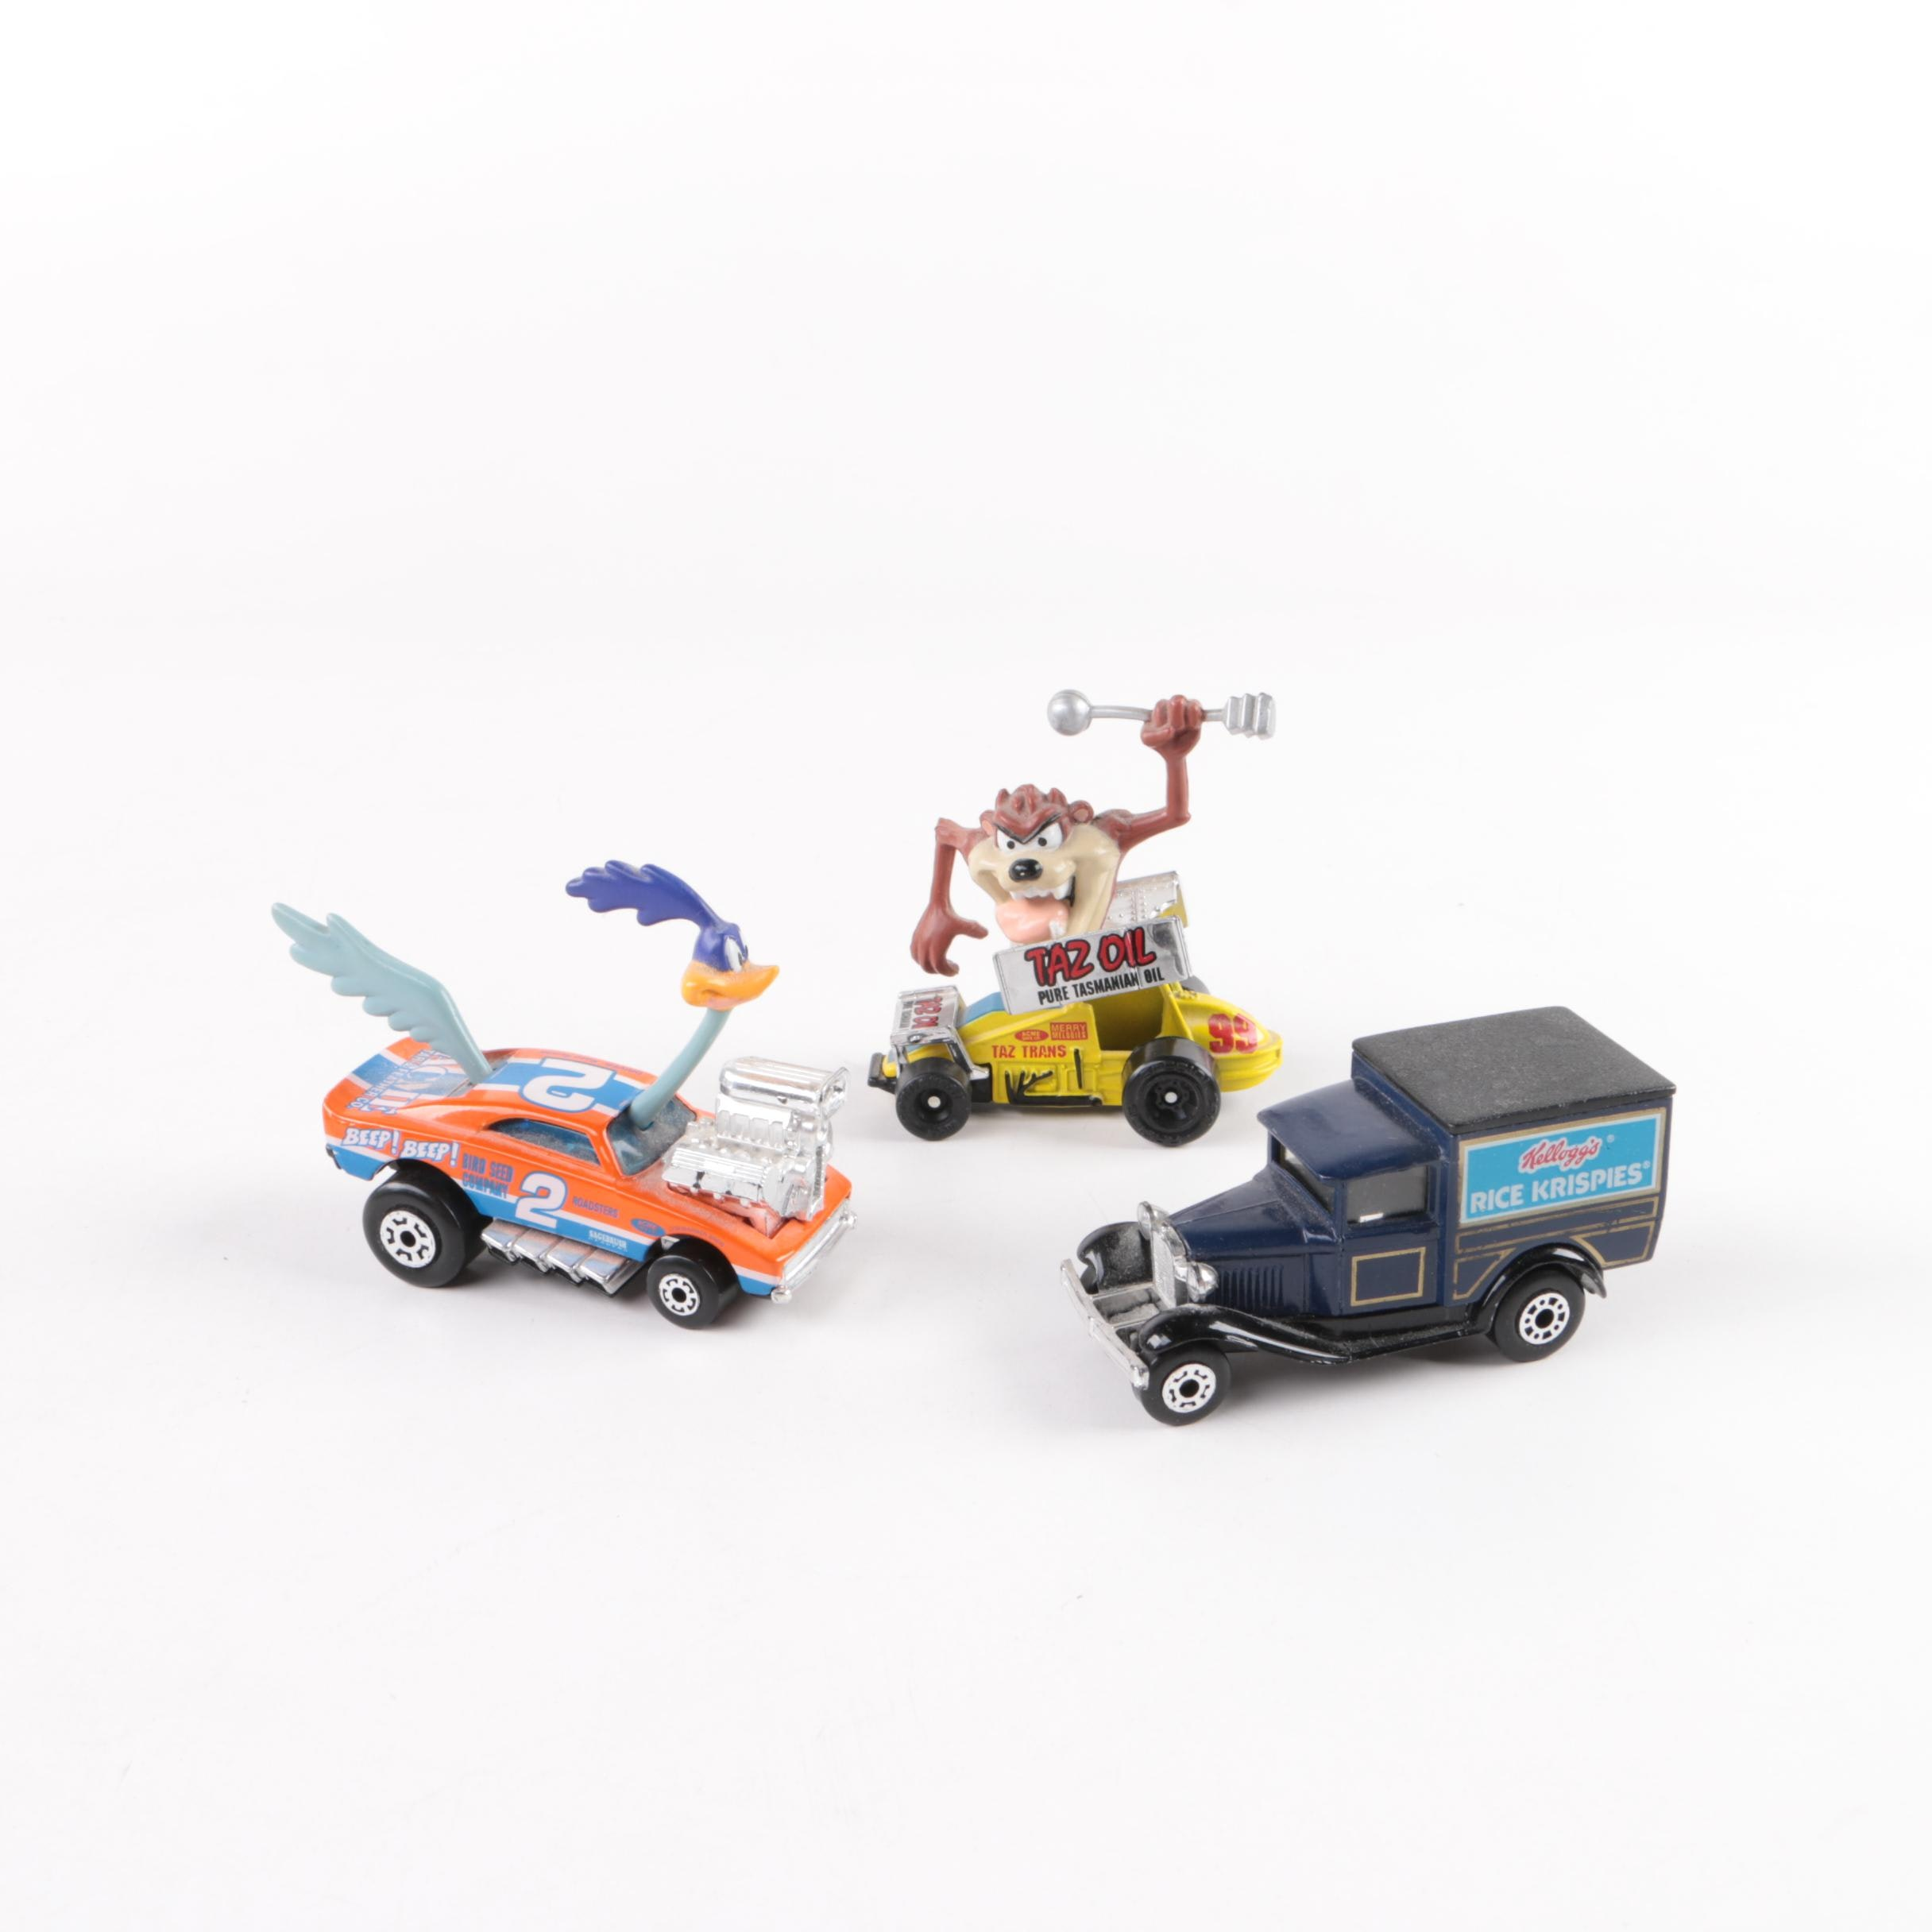 Road Runner, Tasmanian Devil, and Kellogg's Collectible Matchbox Cars